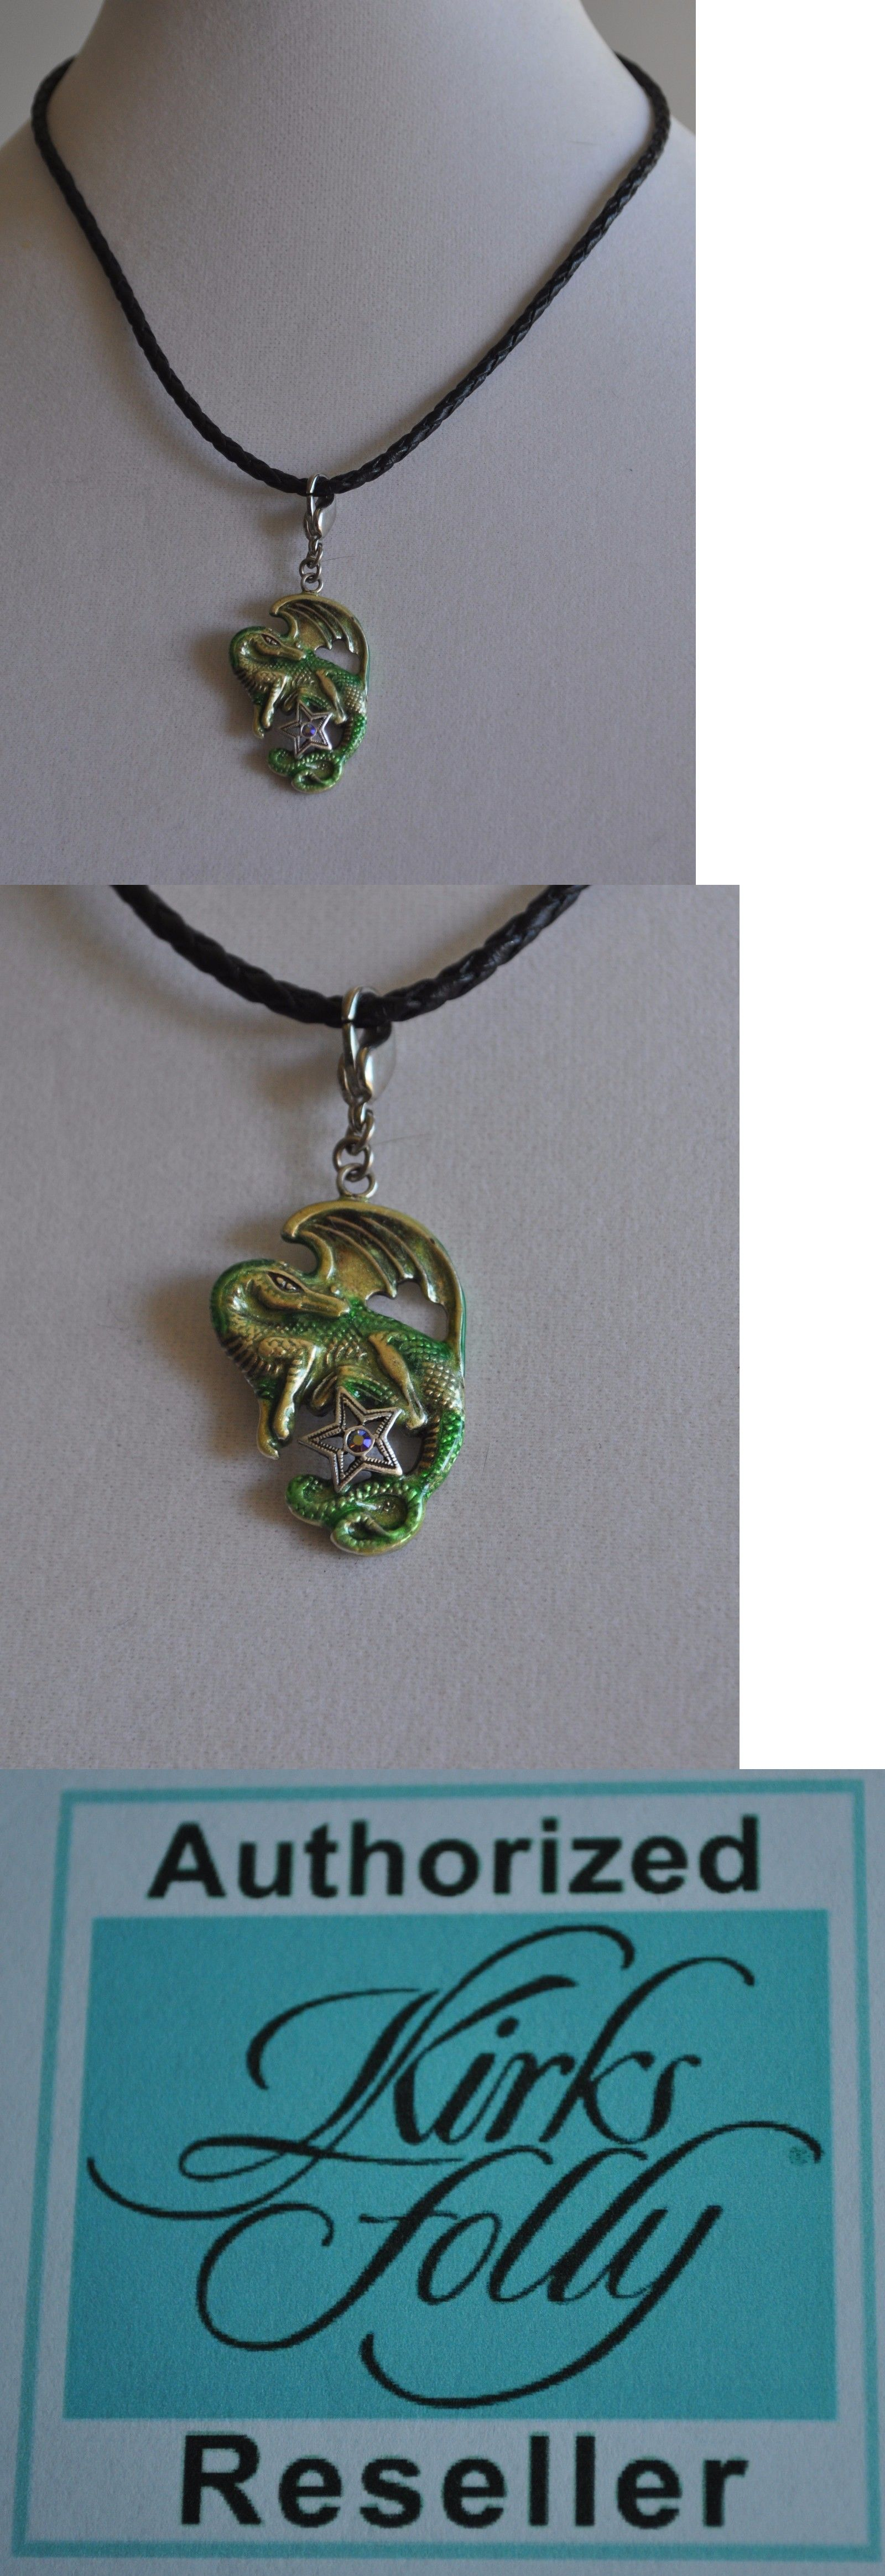 Other Fashion Jewelry 499: Kirks Folly Dragon Pendant Necklace In Silver Tone -> BUY IT NOW ONLY: $31.99 on eBay!